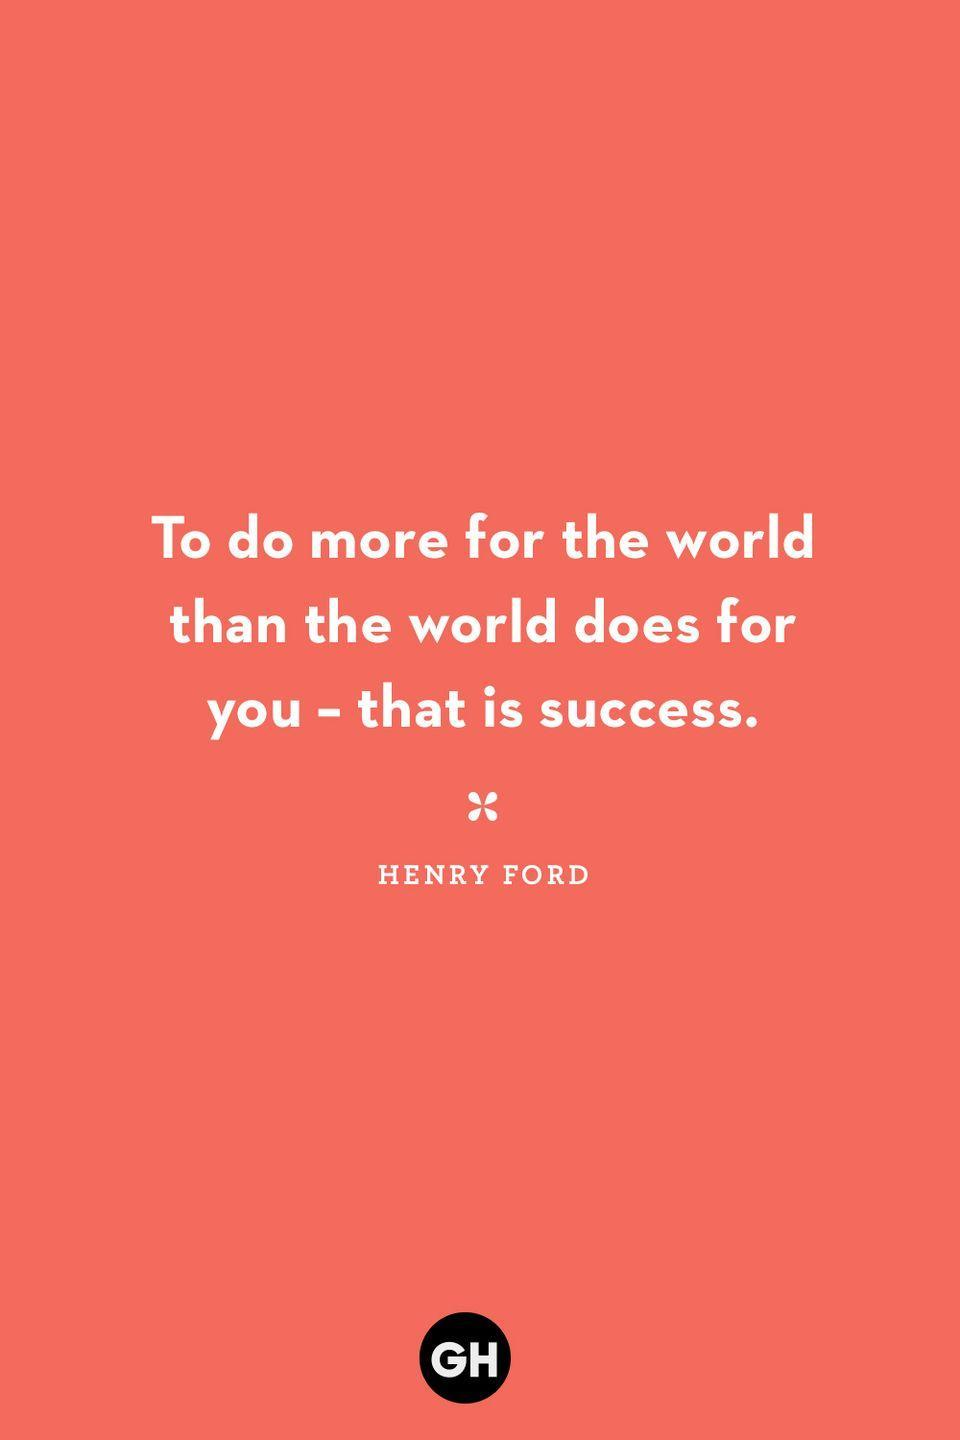 <p>To do more for the world than the world does for you — that is success.</p>